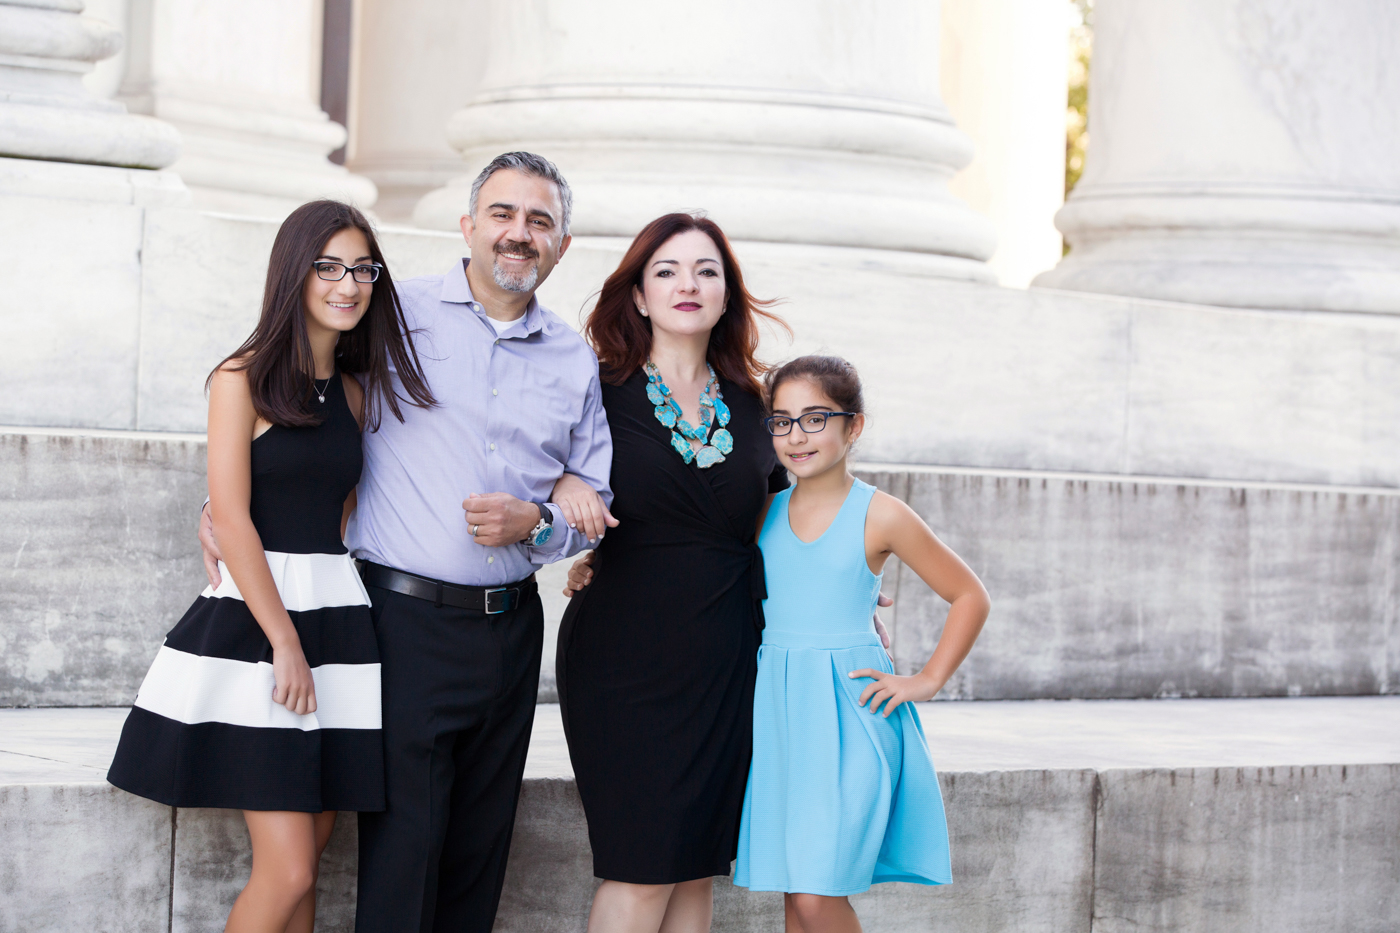 early-fall-family-shoot-in-washington-dc-ksenia-pro-photography-2